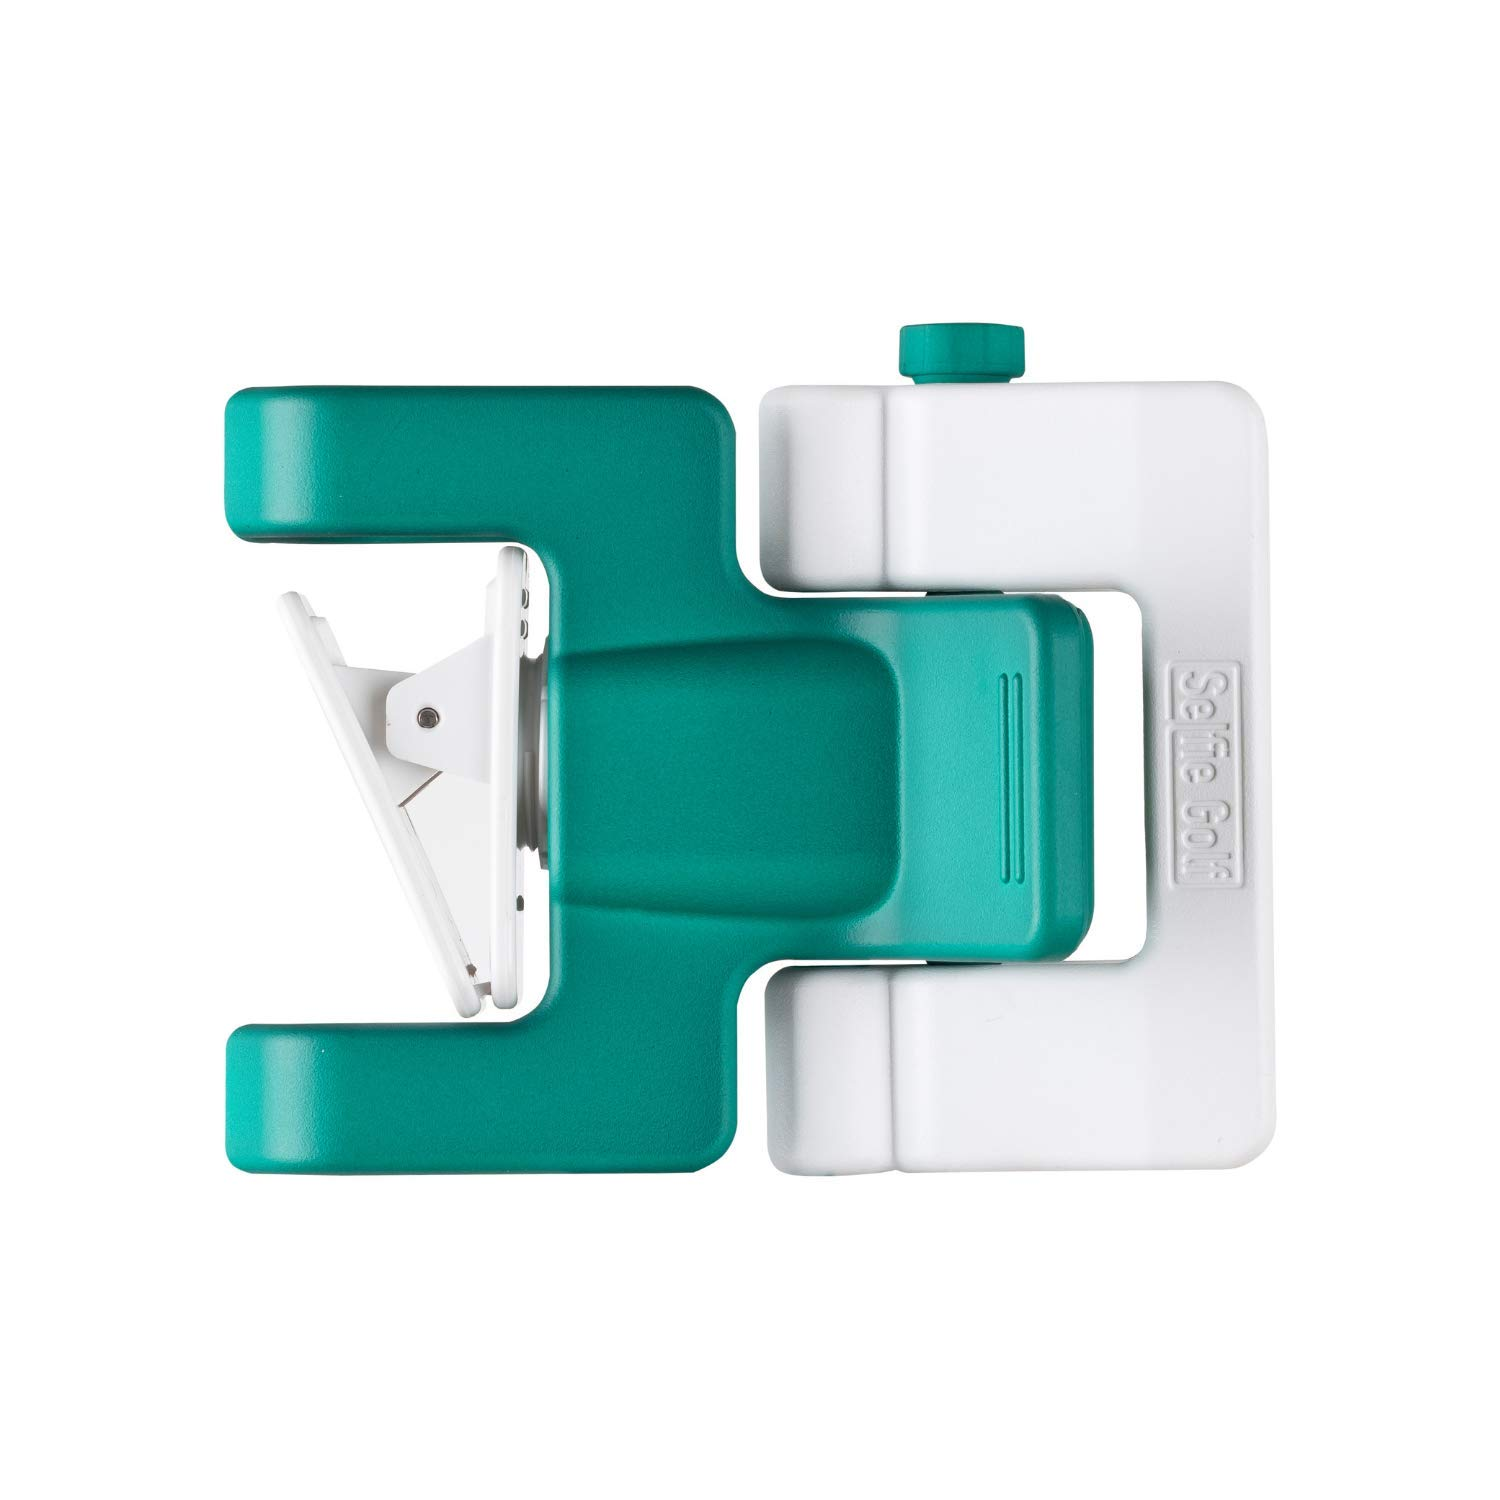 SelfieGolf Record Golf Swing - Cell Phone Clip Holder and Training Aid - Golf Accessories | Winner of The PGA Best Product | Works with Any Smart Phone, Quick Set Up (Green/White) by Selfie Golf (Image #2)